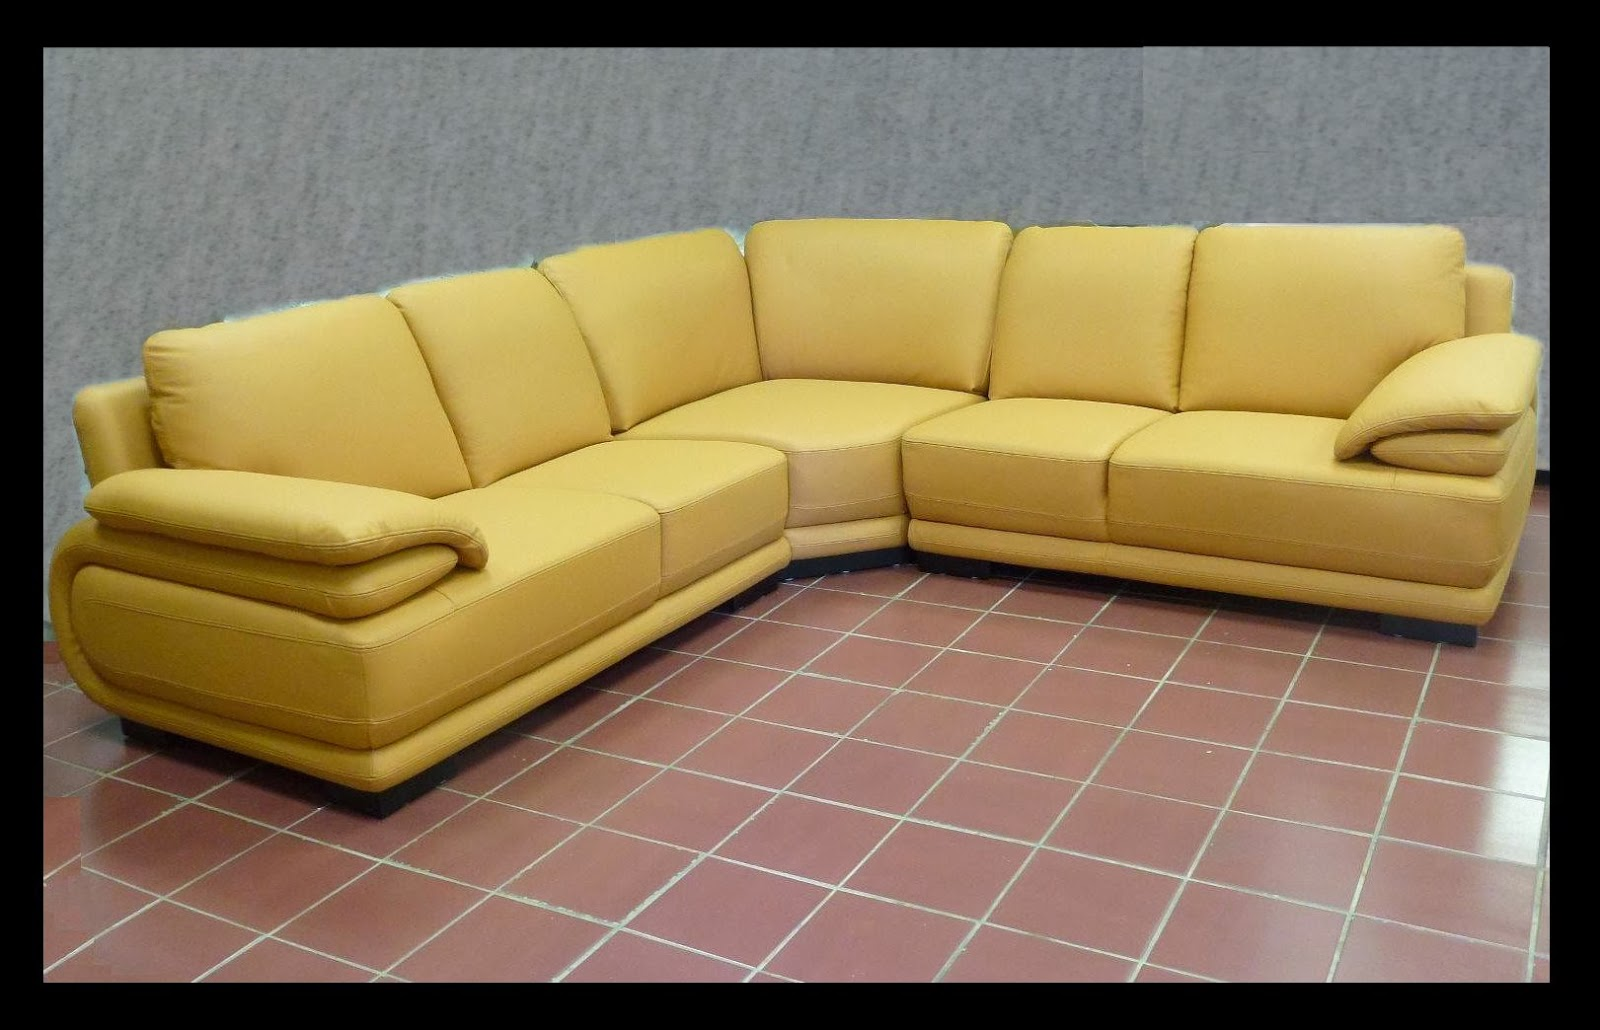 Sofa Leather Sale Milano Bed Uk Interior Concepts Furniture Specializing In Natuzzi